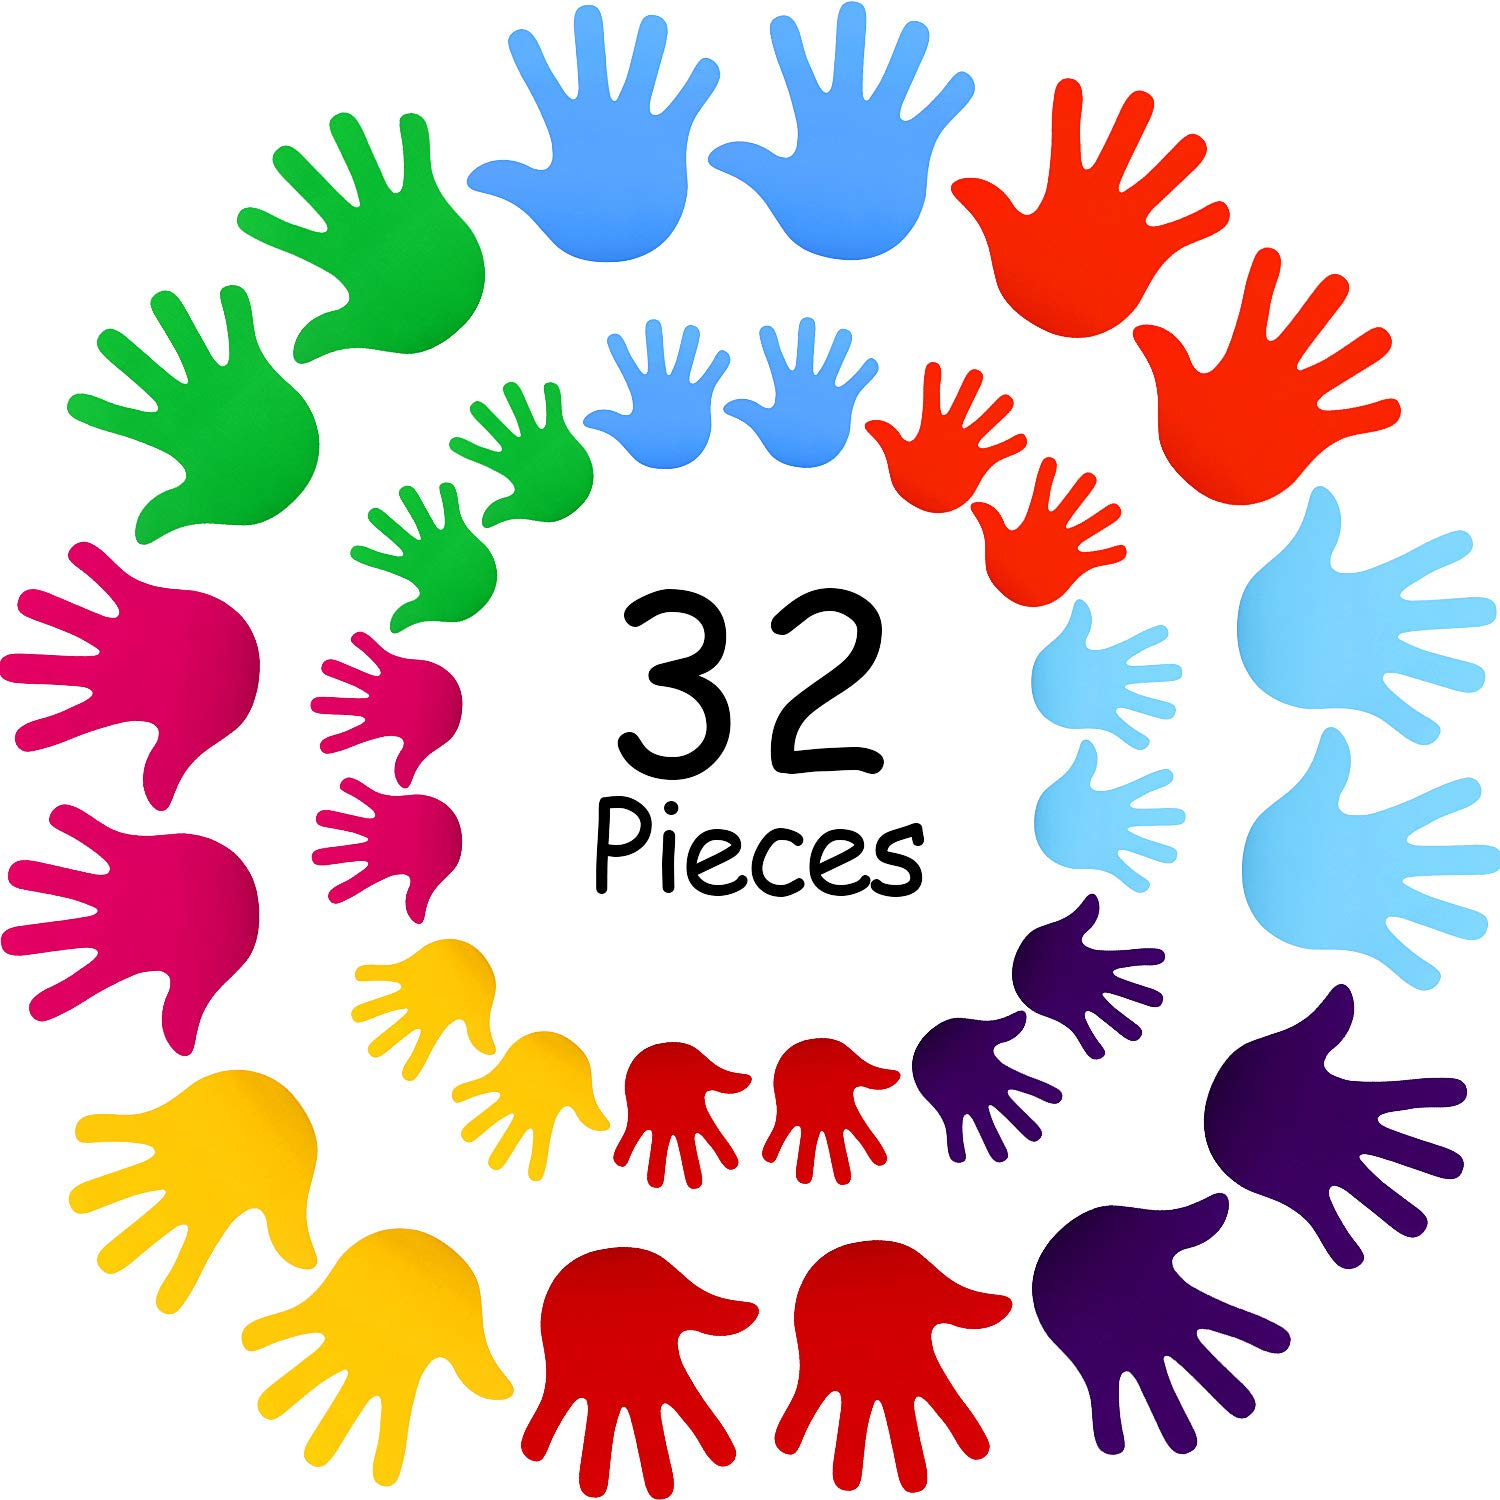 32 Pieces Colorful Handprint Wall Stickers DIY Handprint Wall Decals for Kids Nursery Classroom Bedroom Decoration, 8 Colors